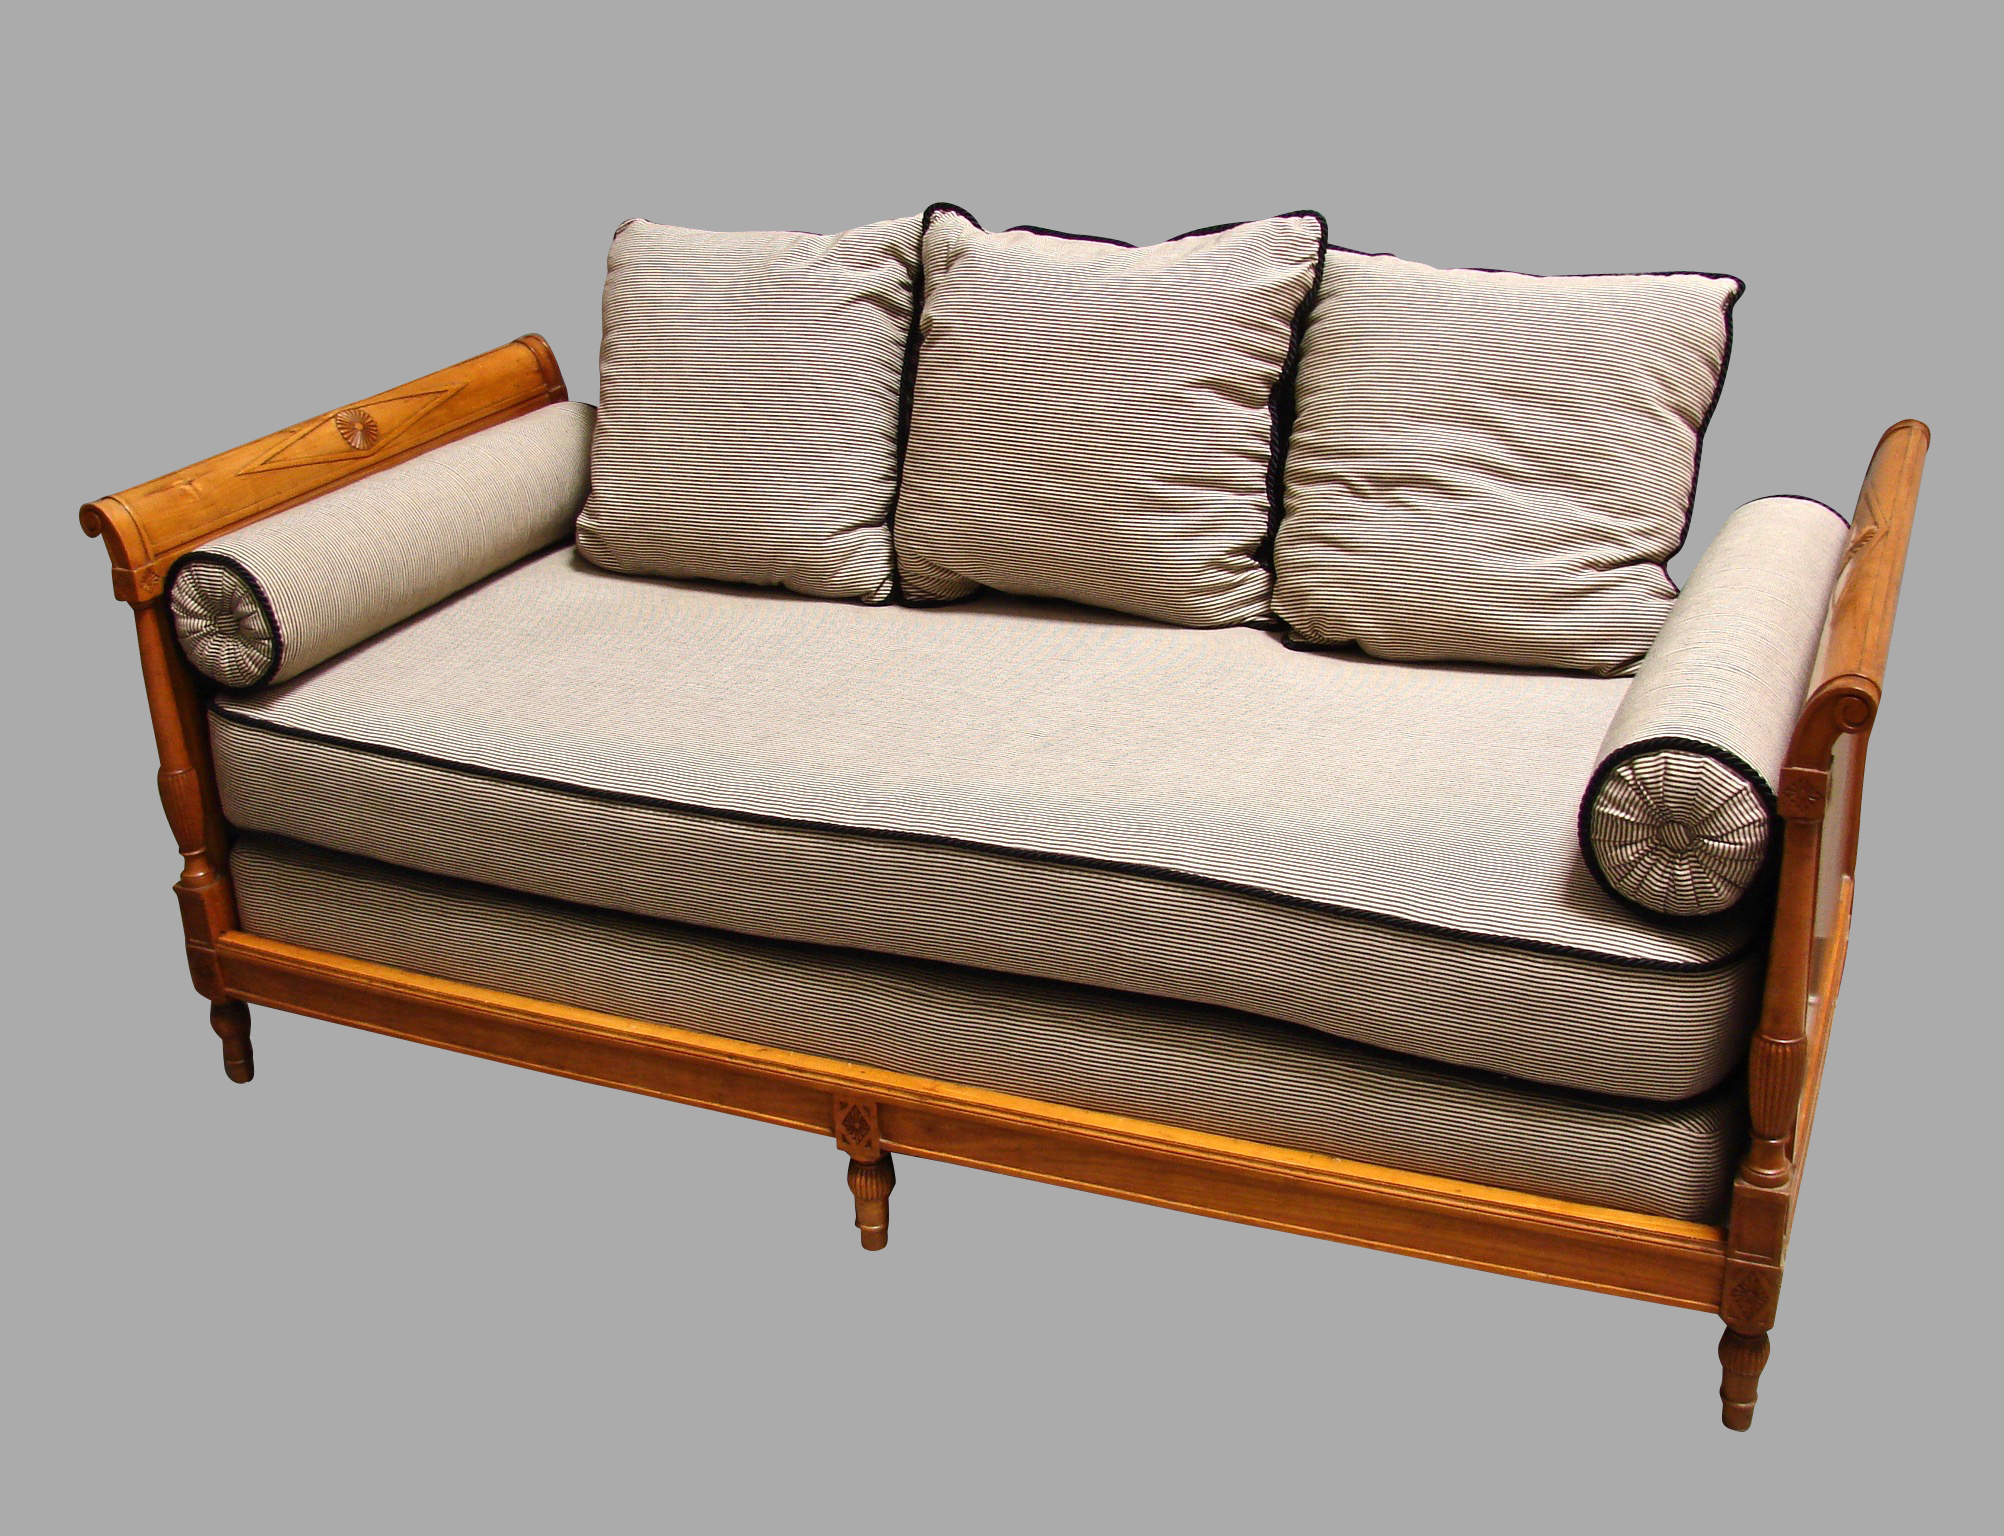 Continental Fruitwood Biedermeier Style Upholstered Daybed | DANIEL STEIN Antiques San Francisco CA